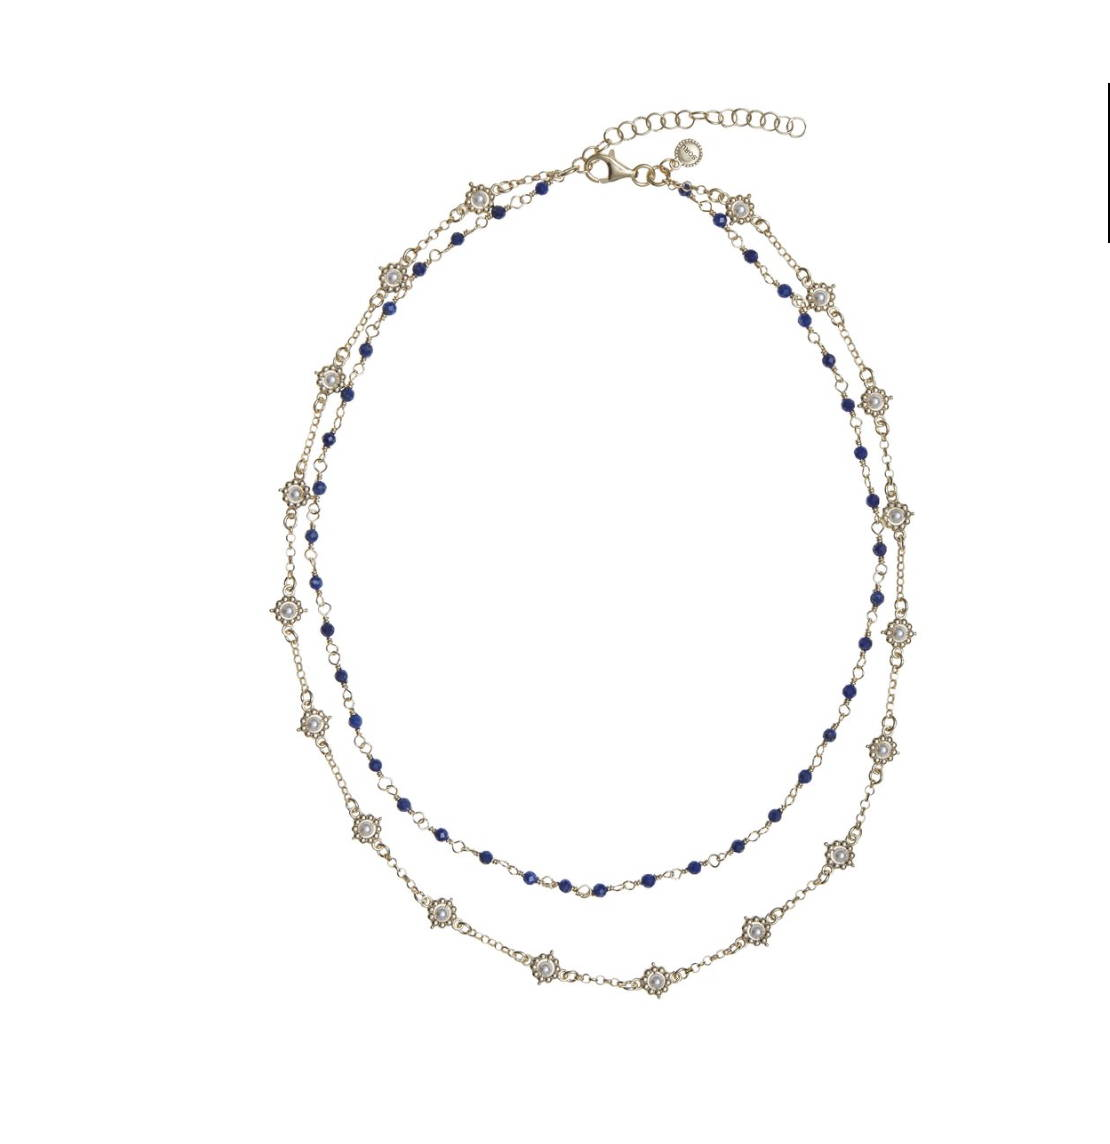 SORU JEWELLERY ADA NECKLACE, PEARL AND LAPIS NECKLACE SORU, SORU SICILIANA NECKLACE